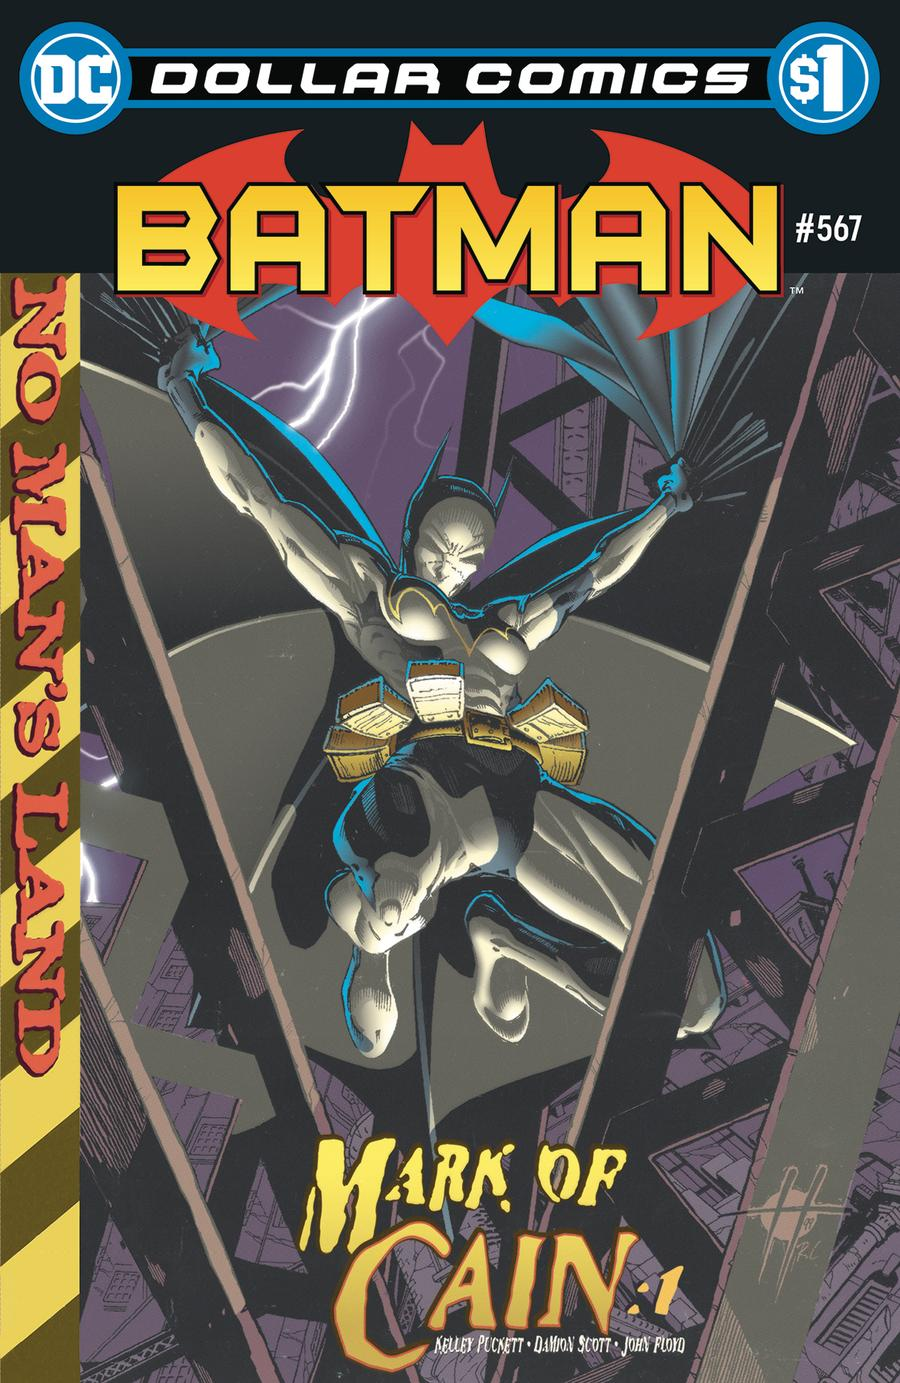 Dollar Comics Batman #567